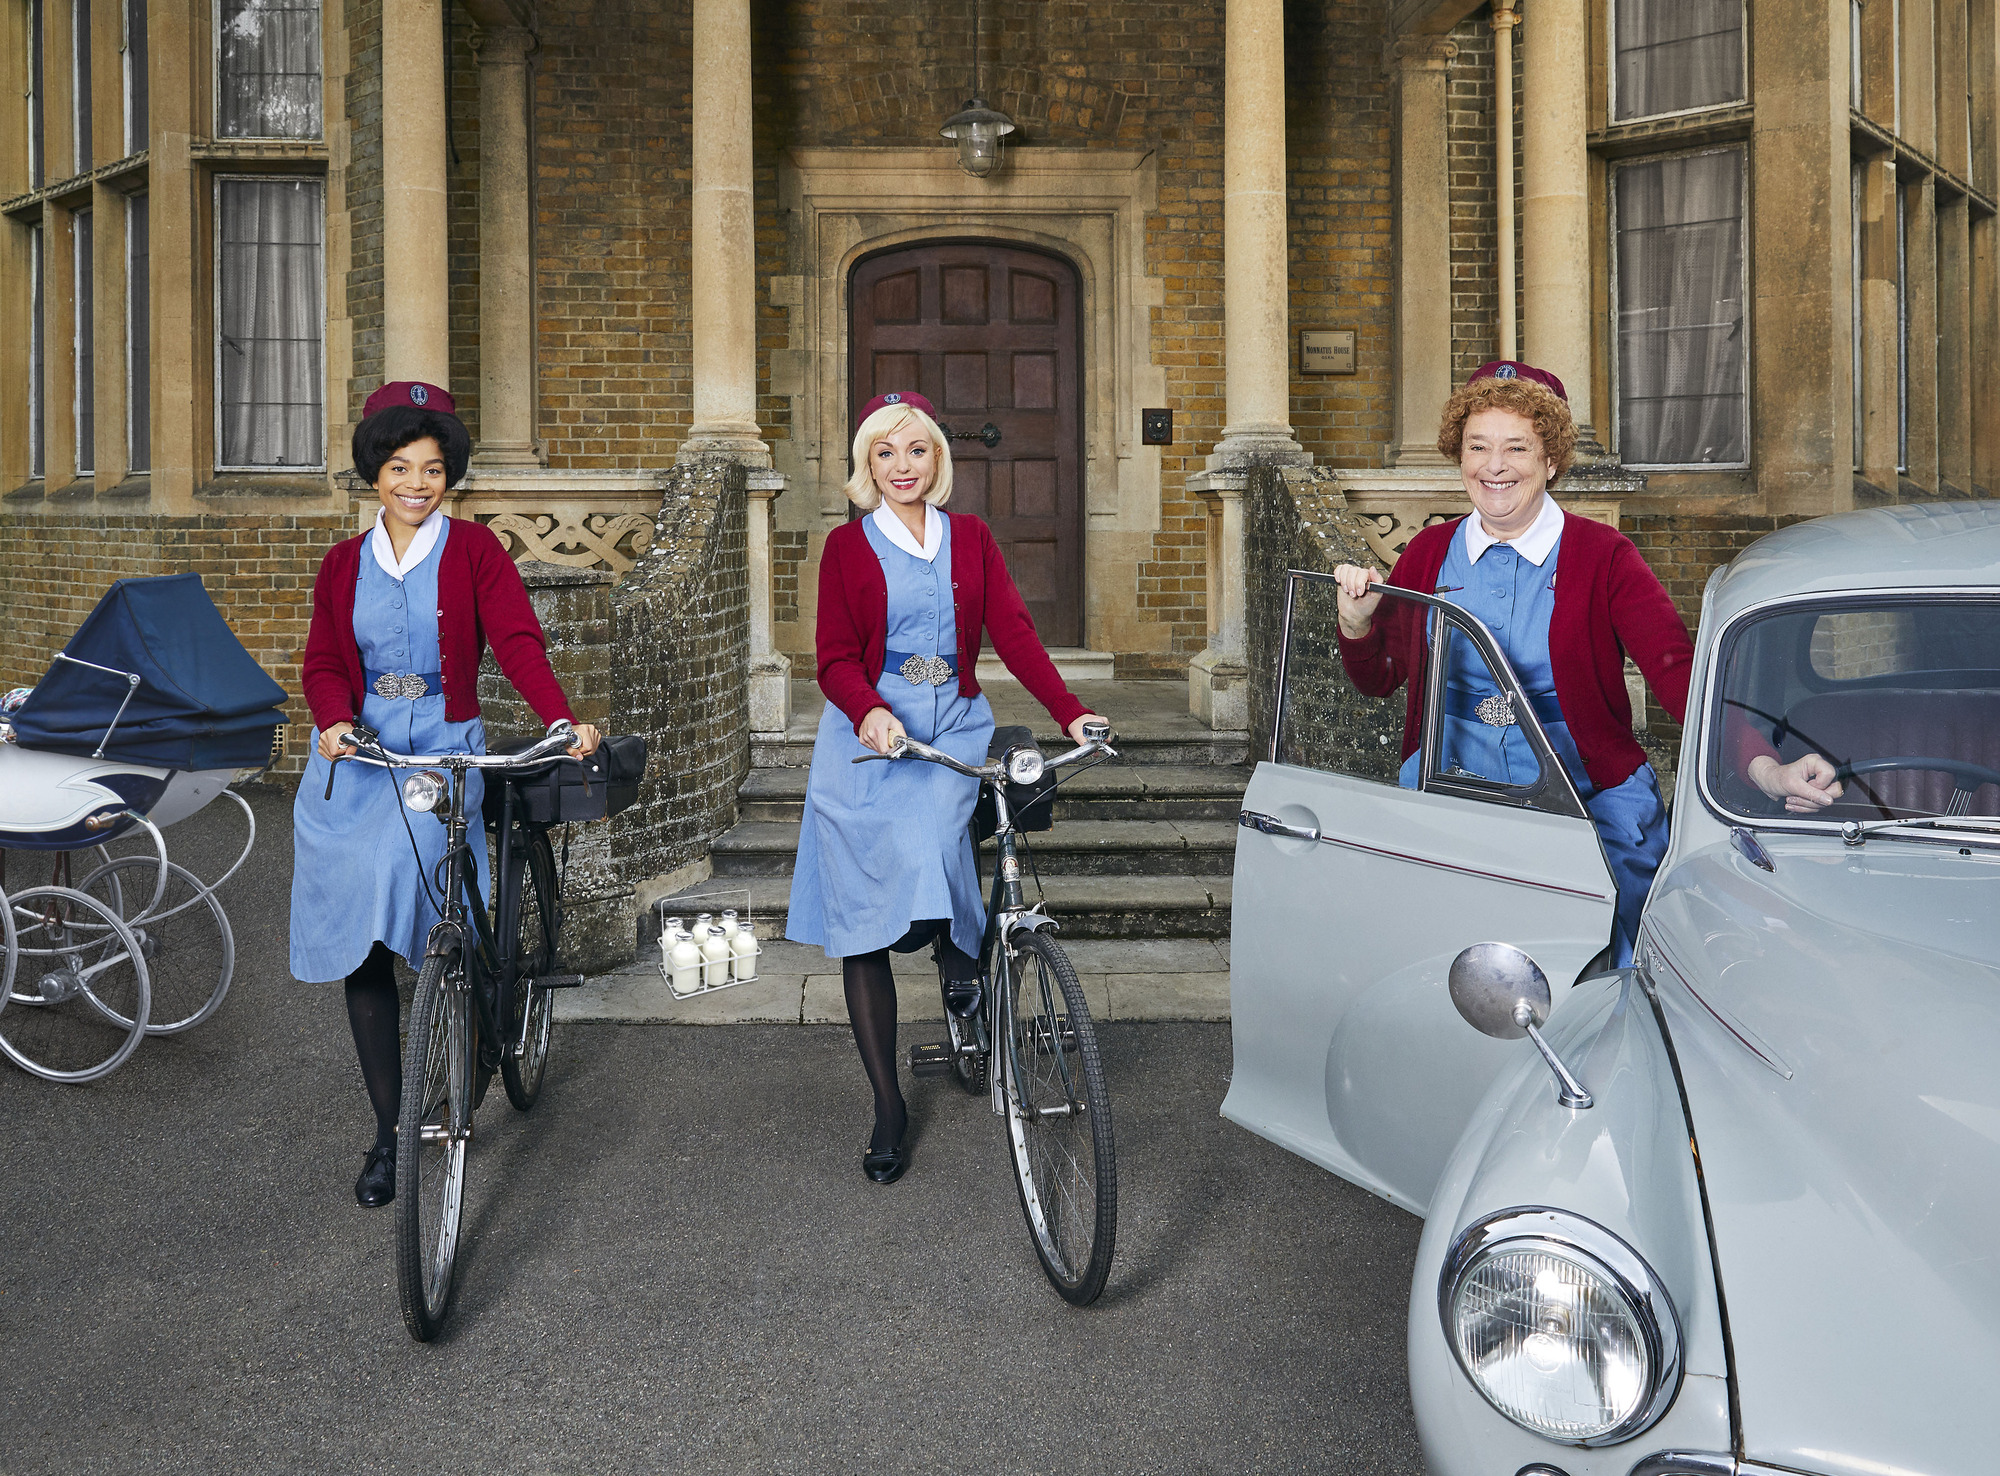 How to watch Call the Midwife 2021 online anywhere in the world